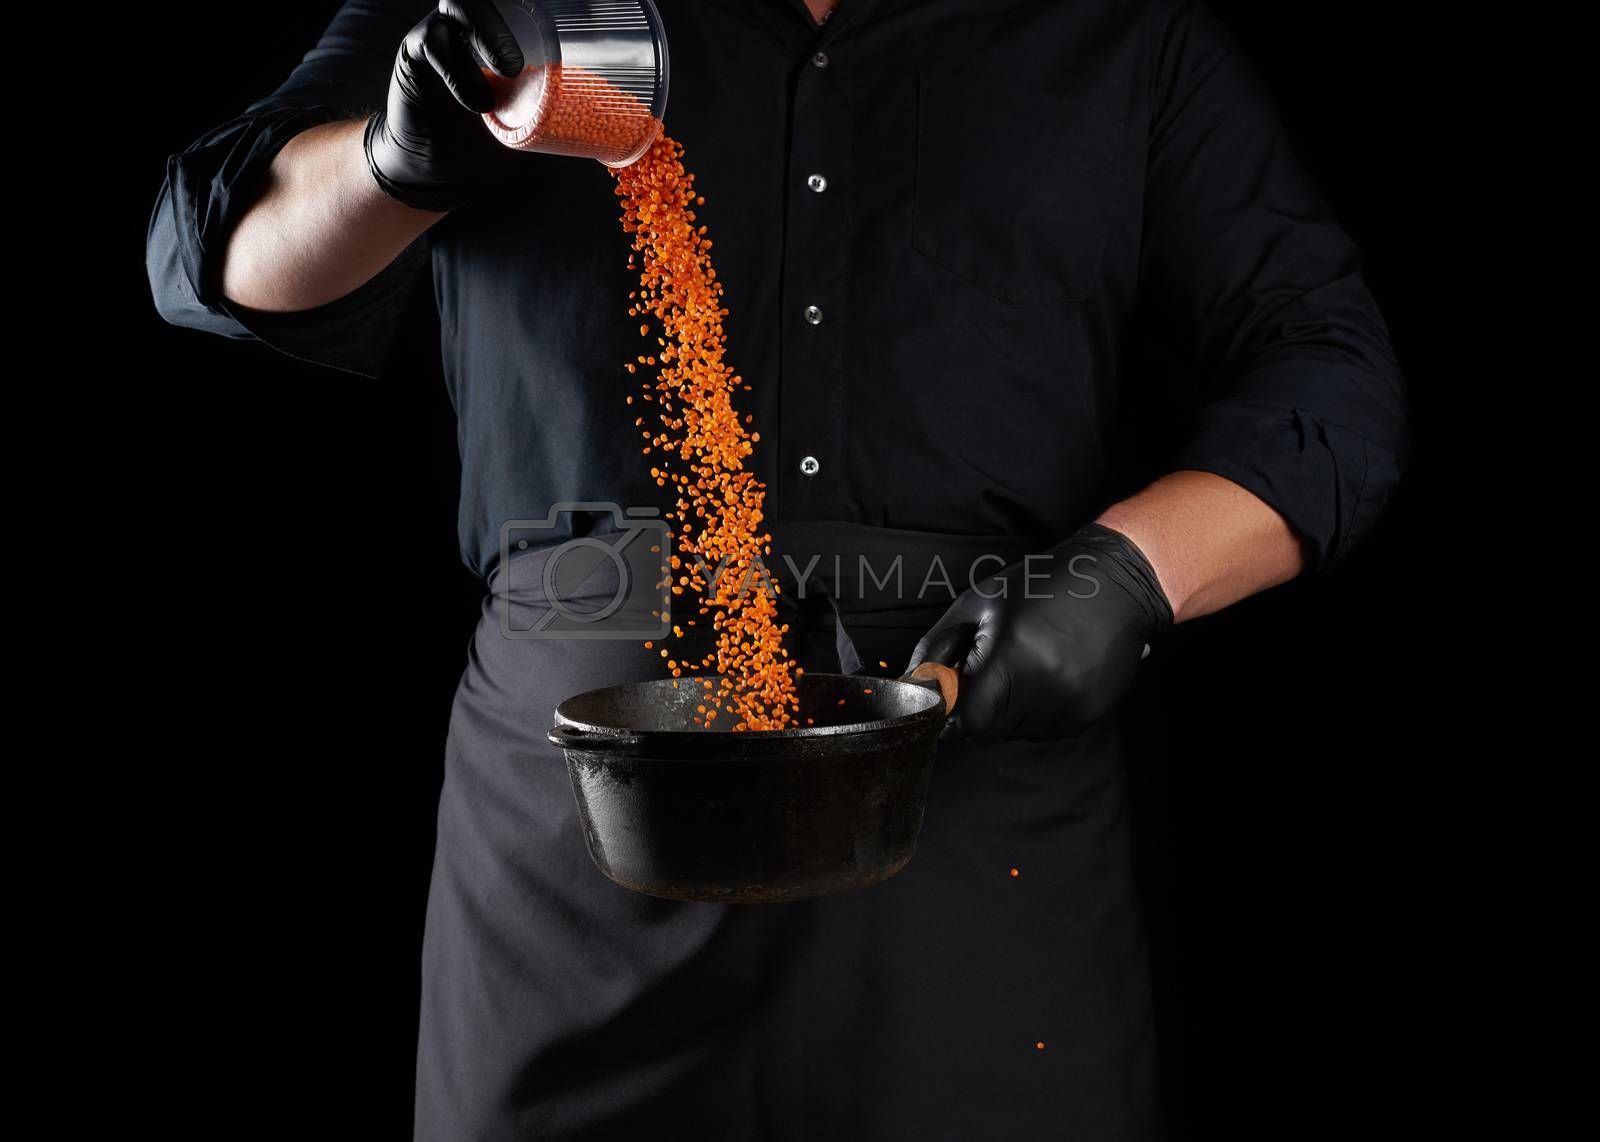 chef in black clothes and latex gloves pours raw lentils into a round cast iron pan with a handle, black background